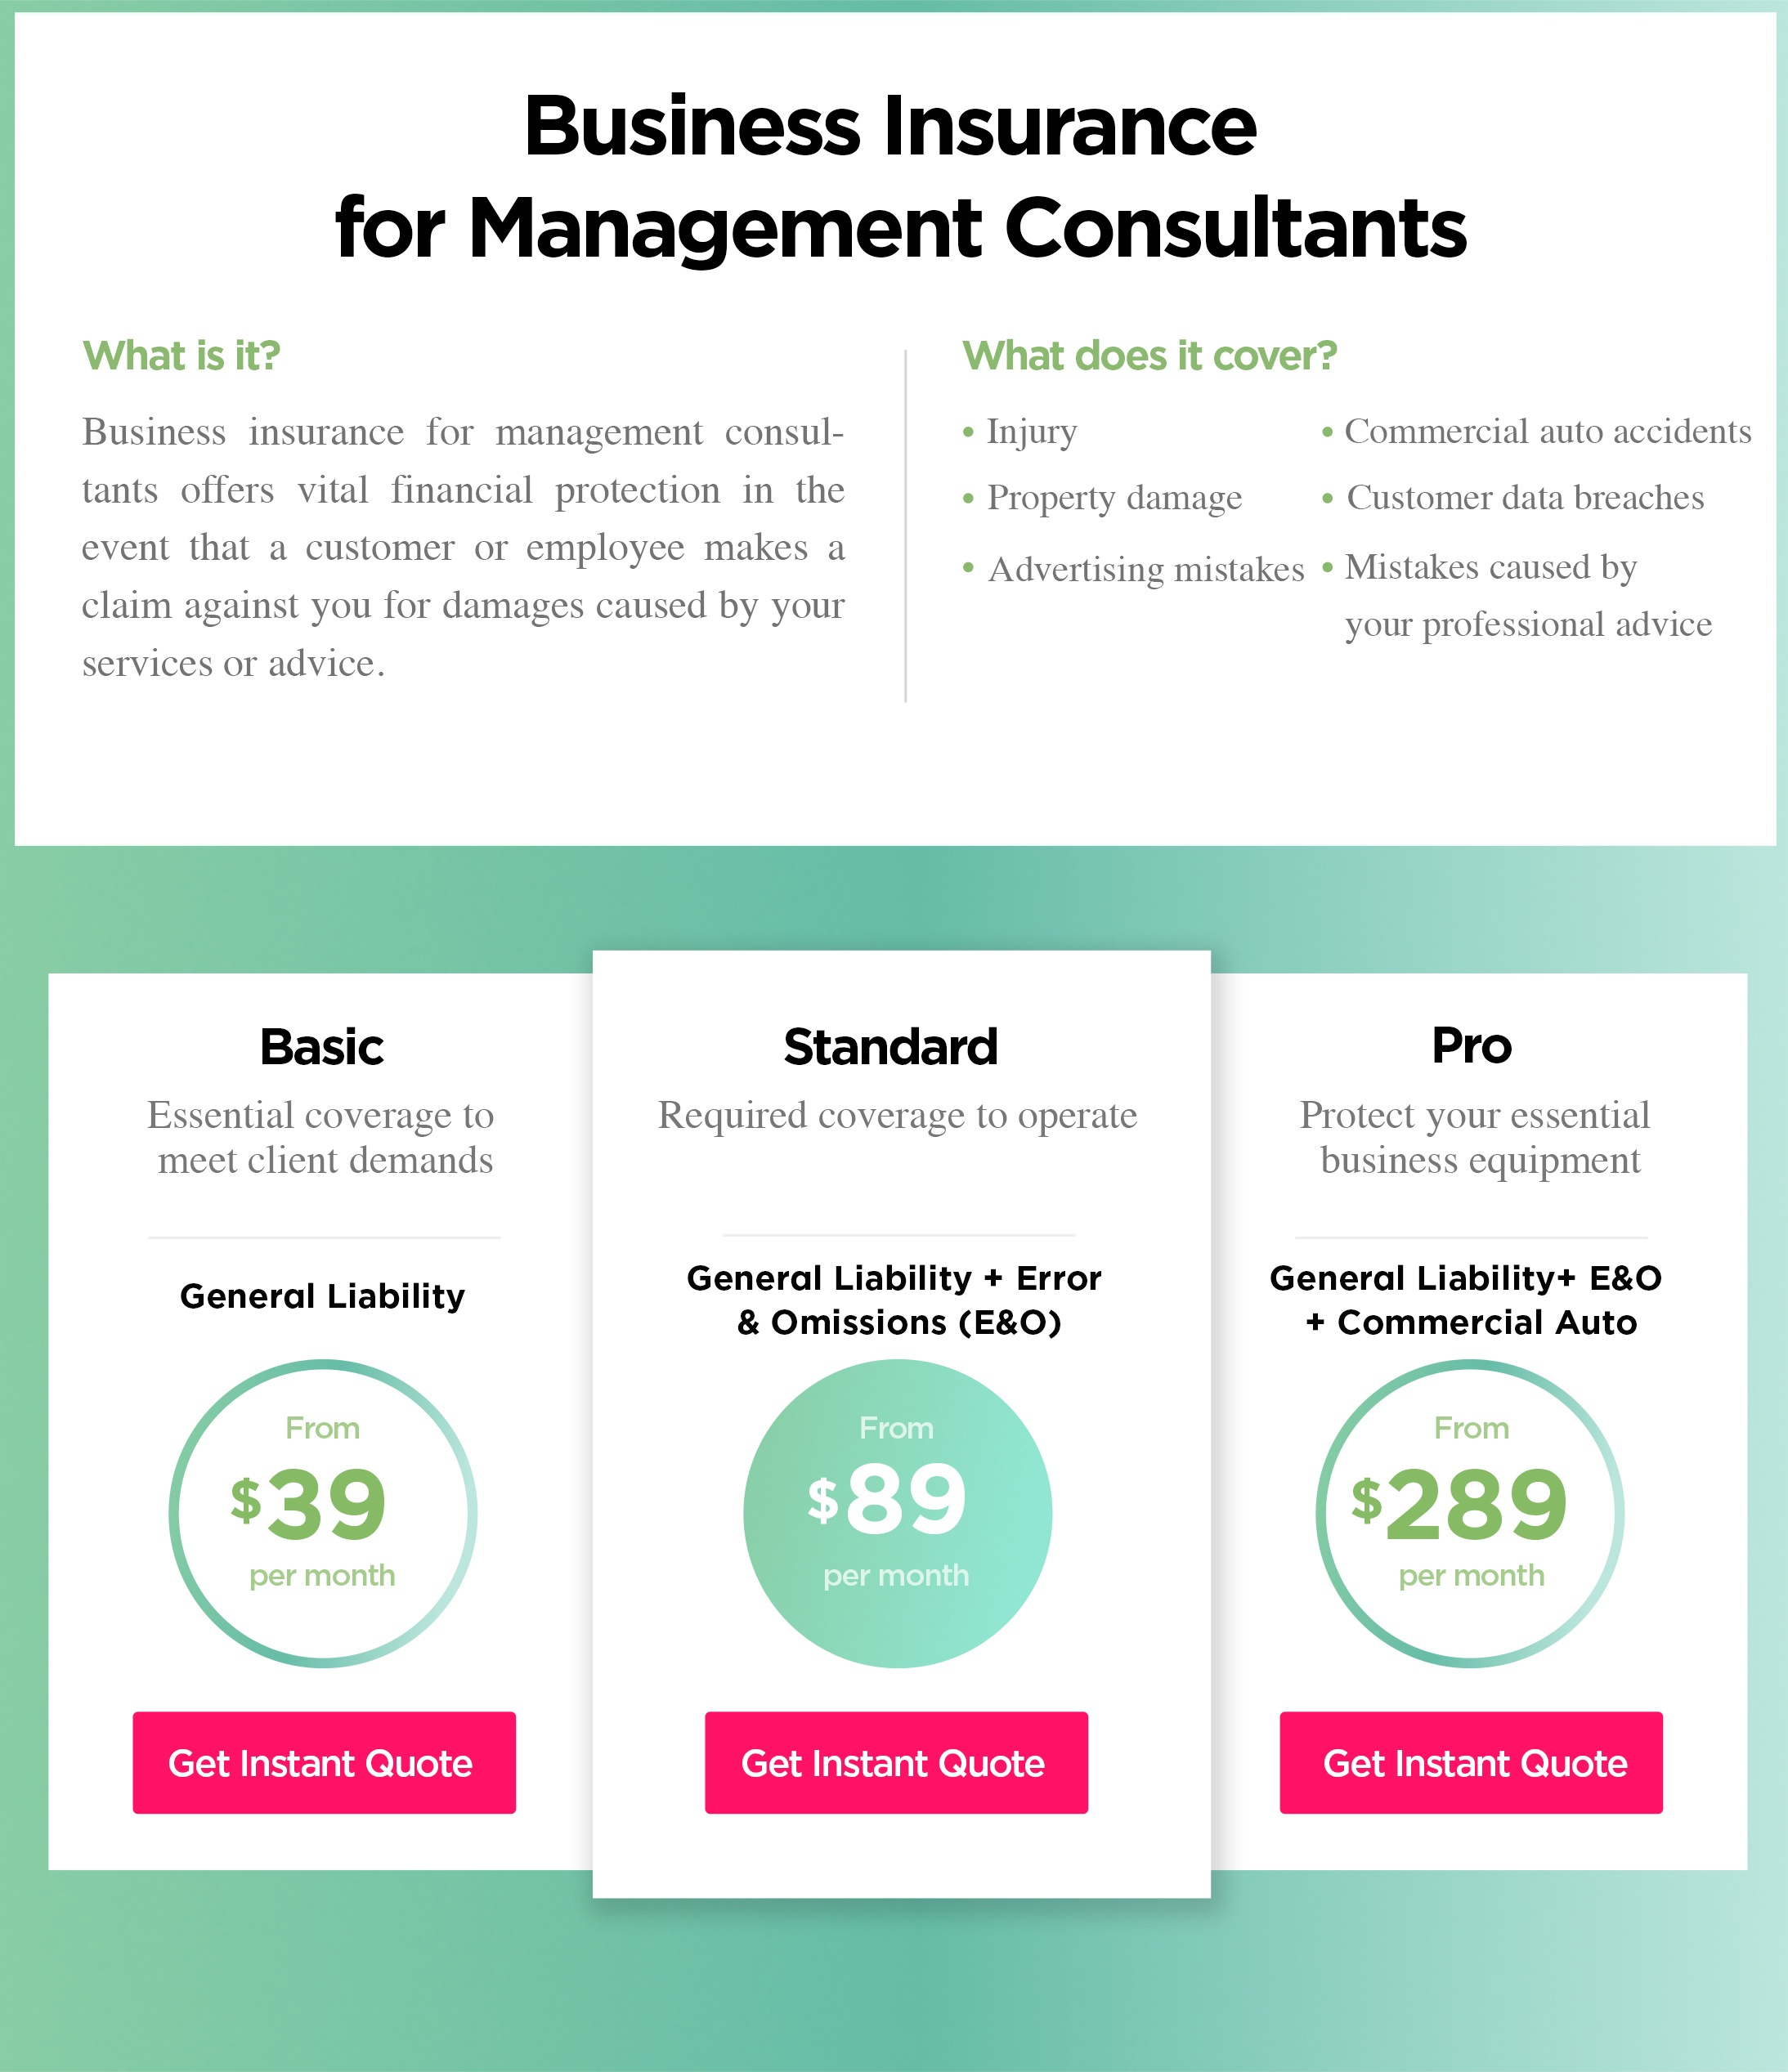 Management Consultants Insurance Cost